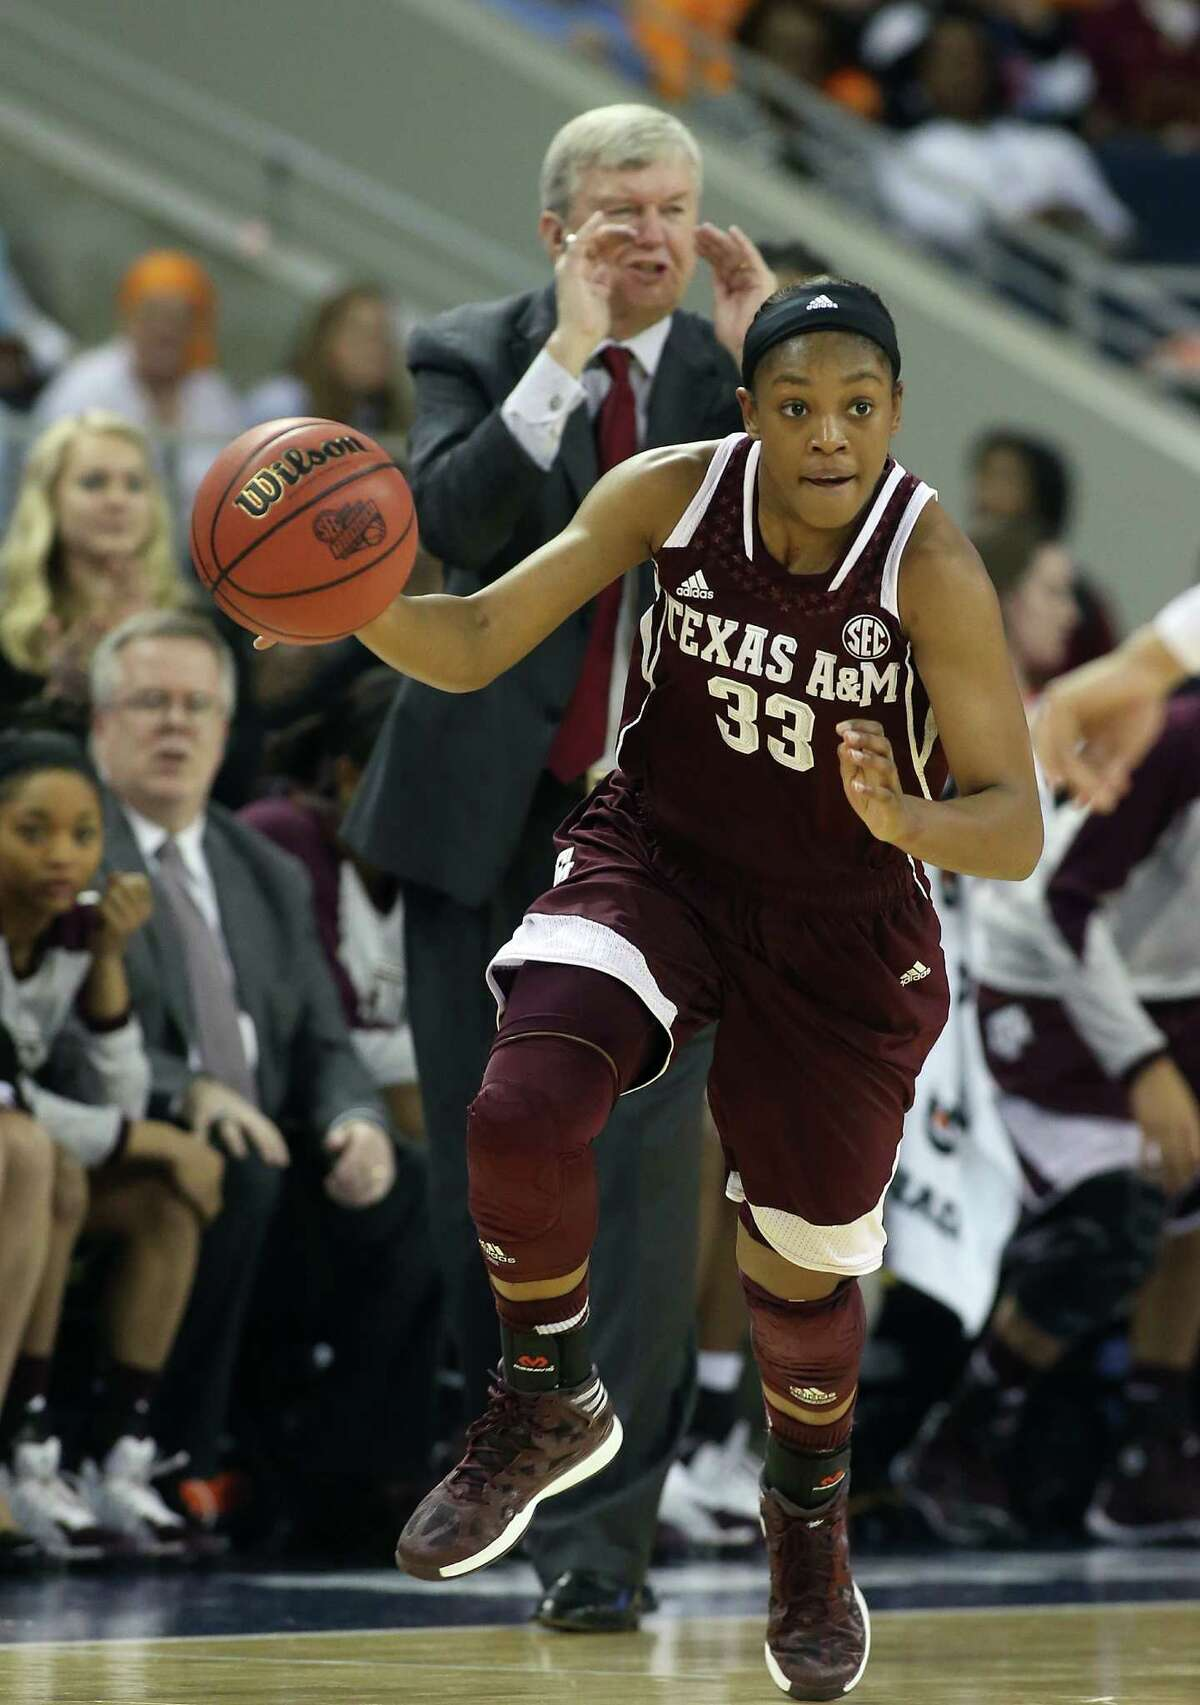 Texas A&M guard Courtney Walker (33) is shown against Tennessee in the first half of an NCAA college basketball game in the semifinals of the Southeastern Conference women's basketball tournament Saturday, March 8, 2014, in Duluth, Ga. (AP Photo/Jason Getz)